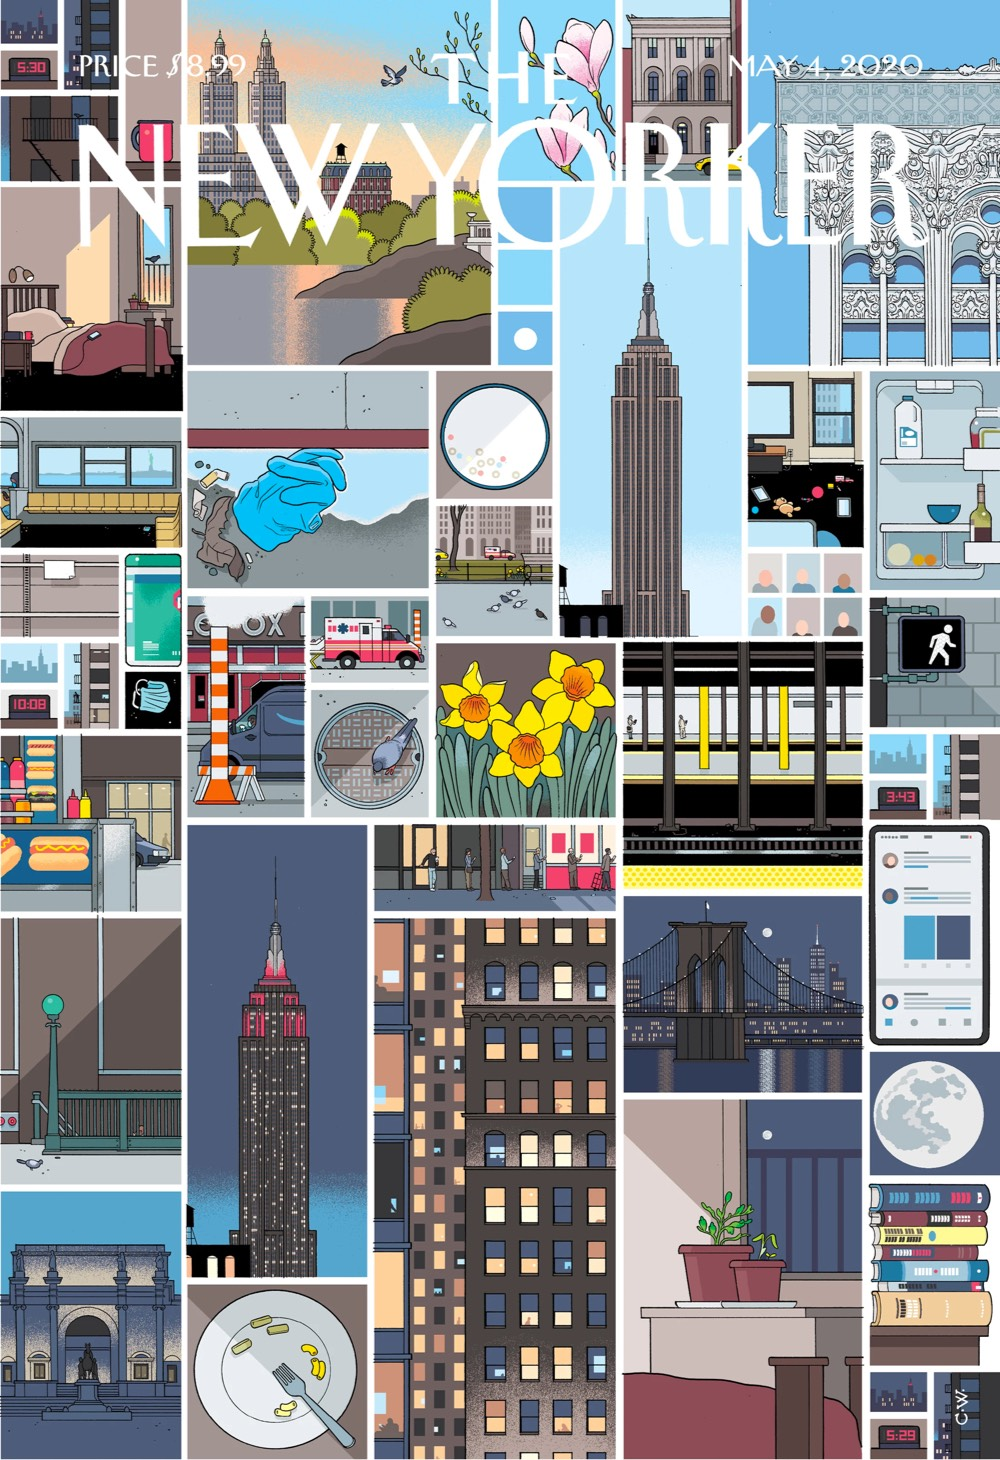 Chris Ware's Still Life of NYC